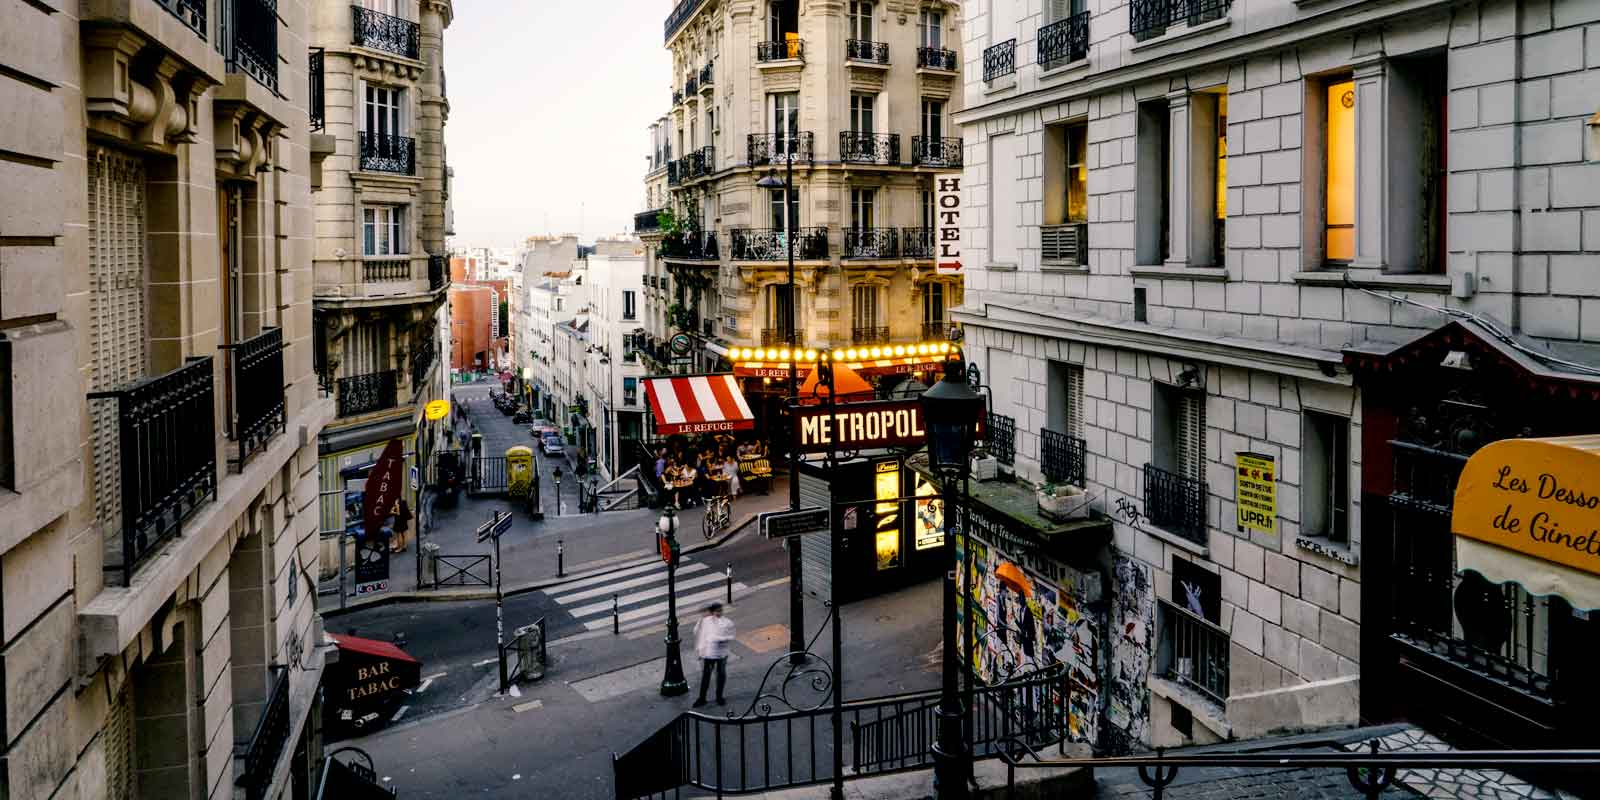 Landscape view of a Parisian neighborhood, with a Metro station, in the background.